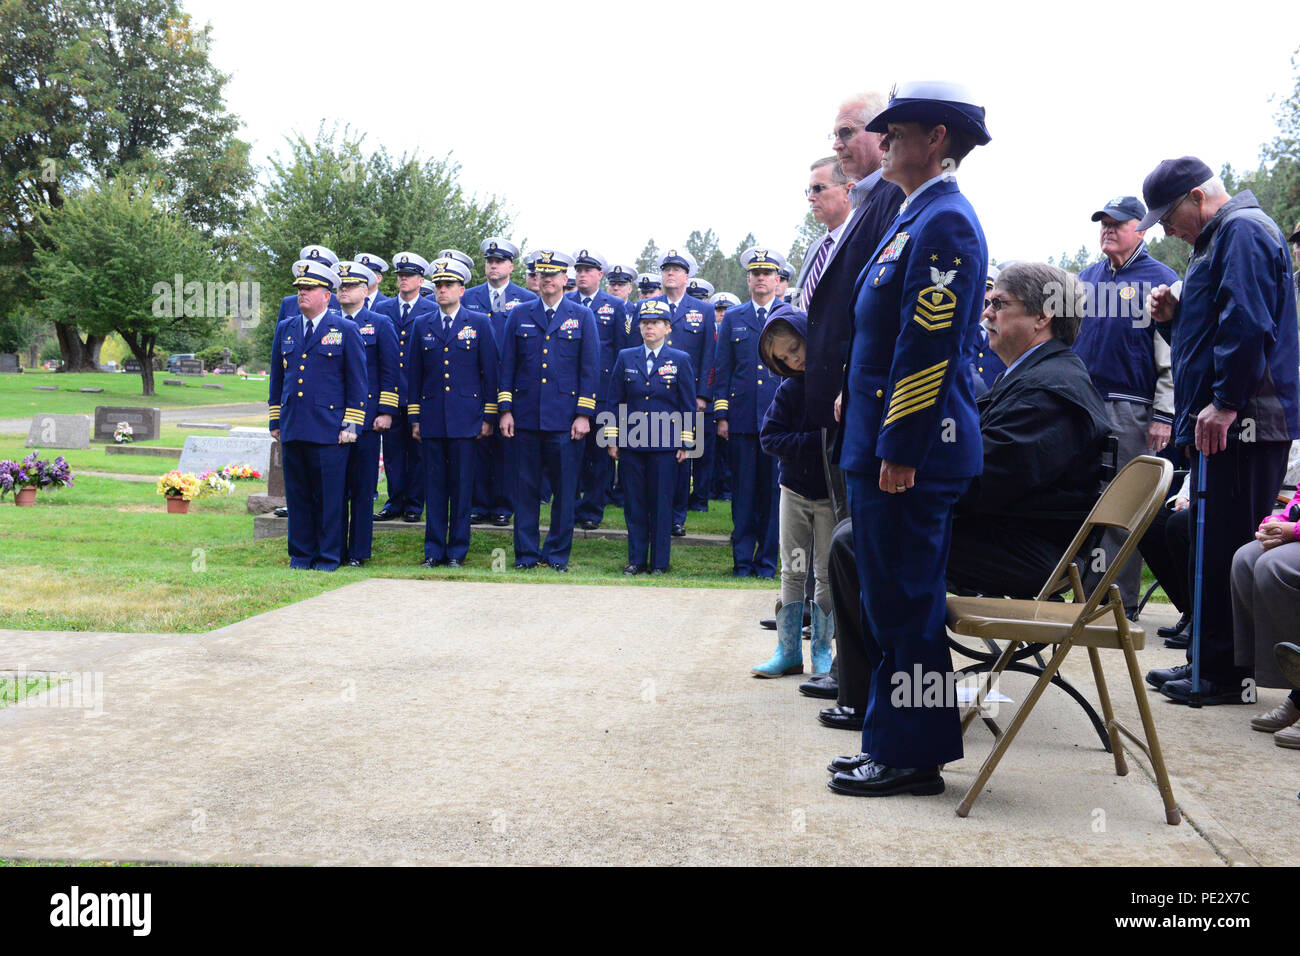 Master Chief Lani Cale-Jones, Deputy Master Chief Petty Officer of the Coast Guard, observes the Douglas Munro Memorial Ceremony at the Laurel Hills Memorial Cemetery in Cle Clum, Wash., Sept. 25, 2015. Rear Adm. Richard Gromlich, commander of the 13th Coast Guard District, spoke during the ceremony about Munro's bravery and devotion to duty. (U.S. Coast Guard photo by Petty Officer 3rd Class Katelyn Shearer) - Stock Image